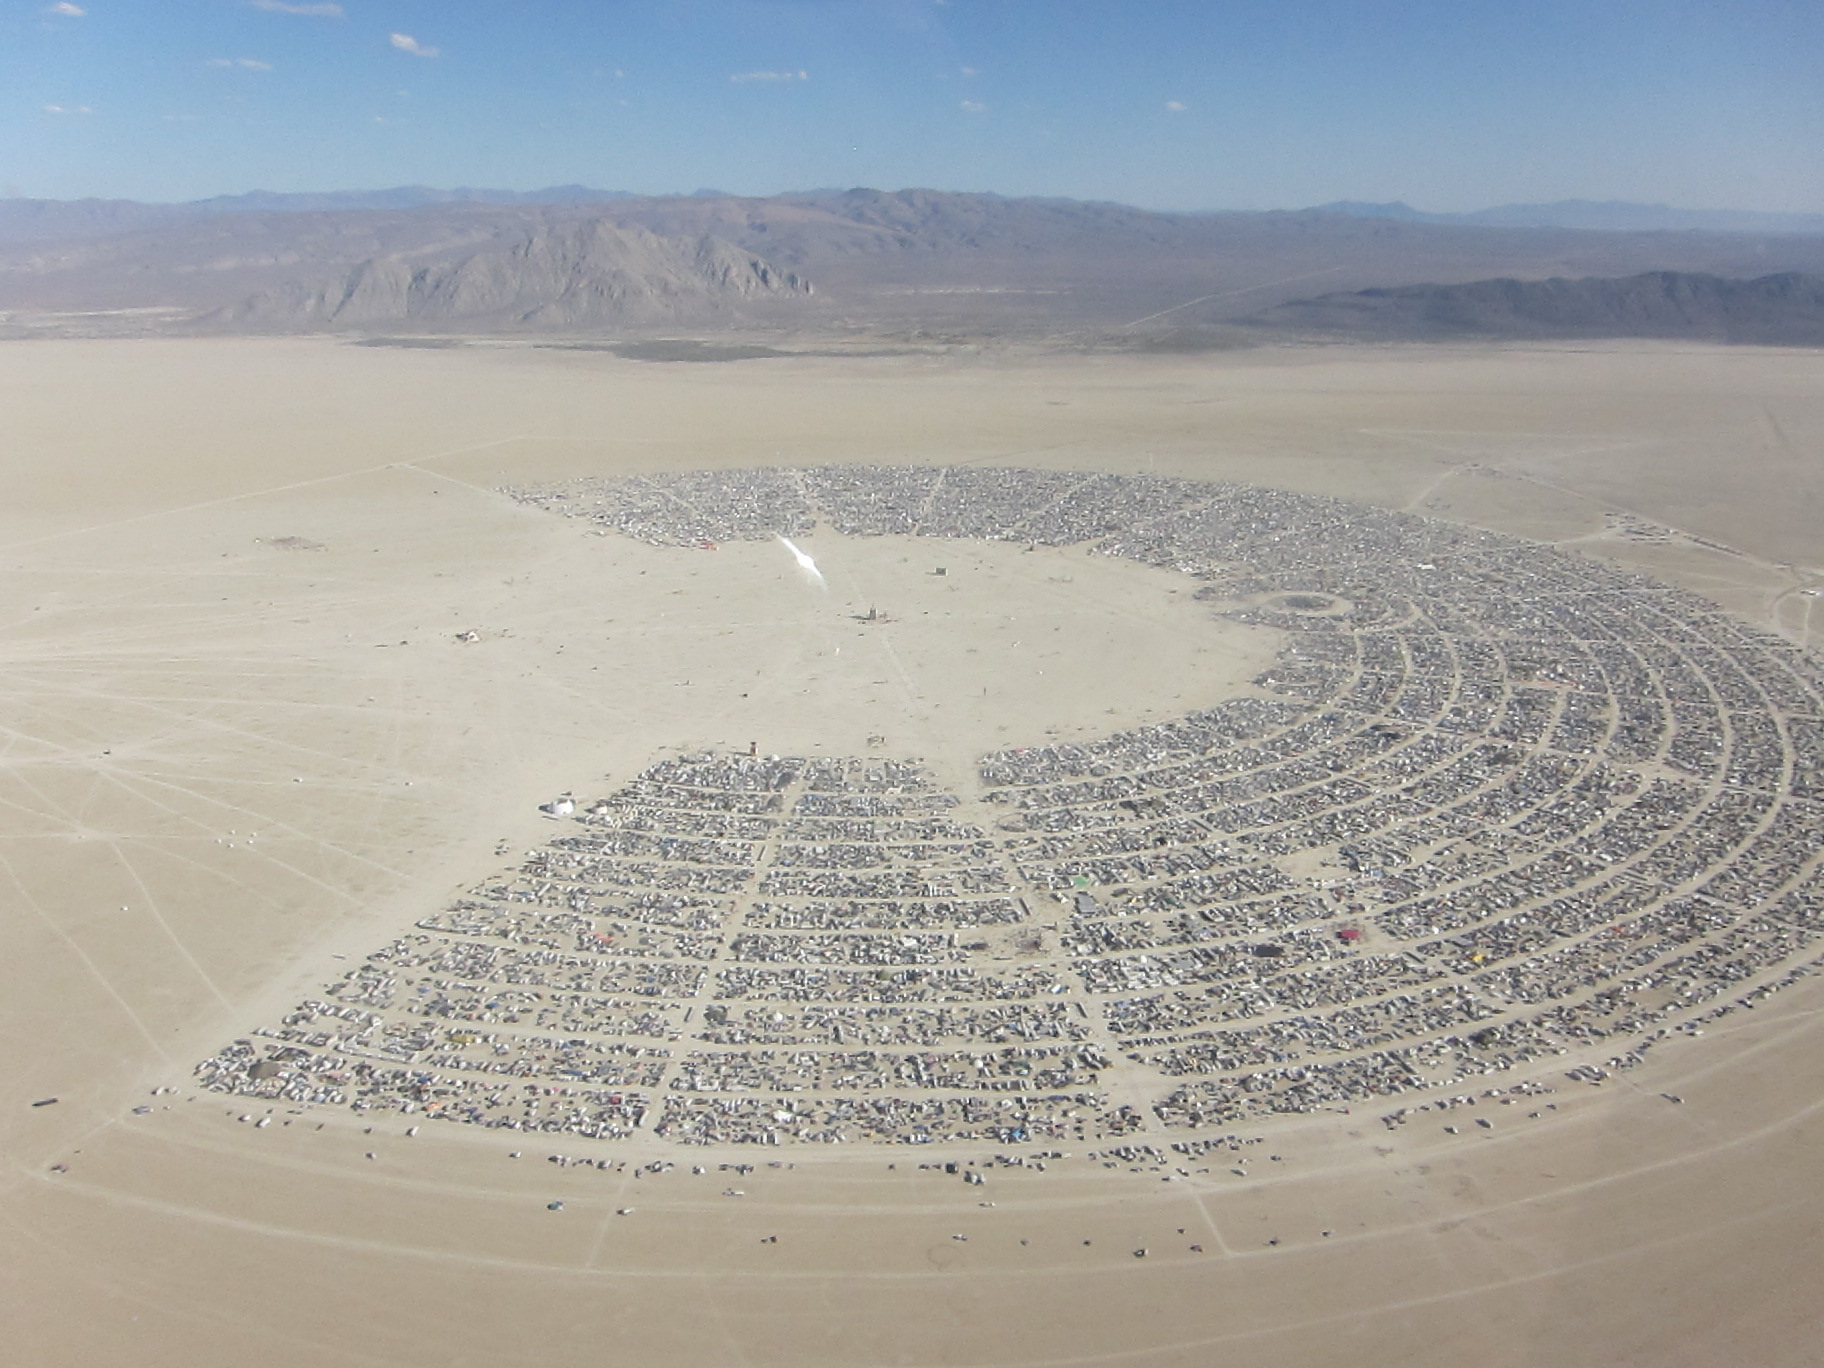 Burning Man - Courtesy of the artist